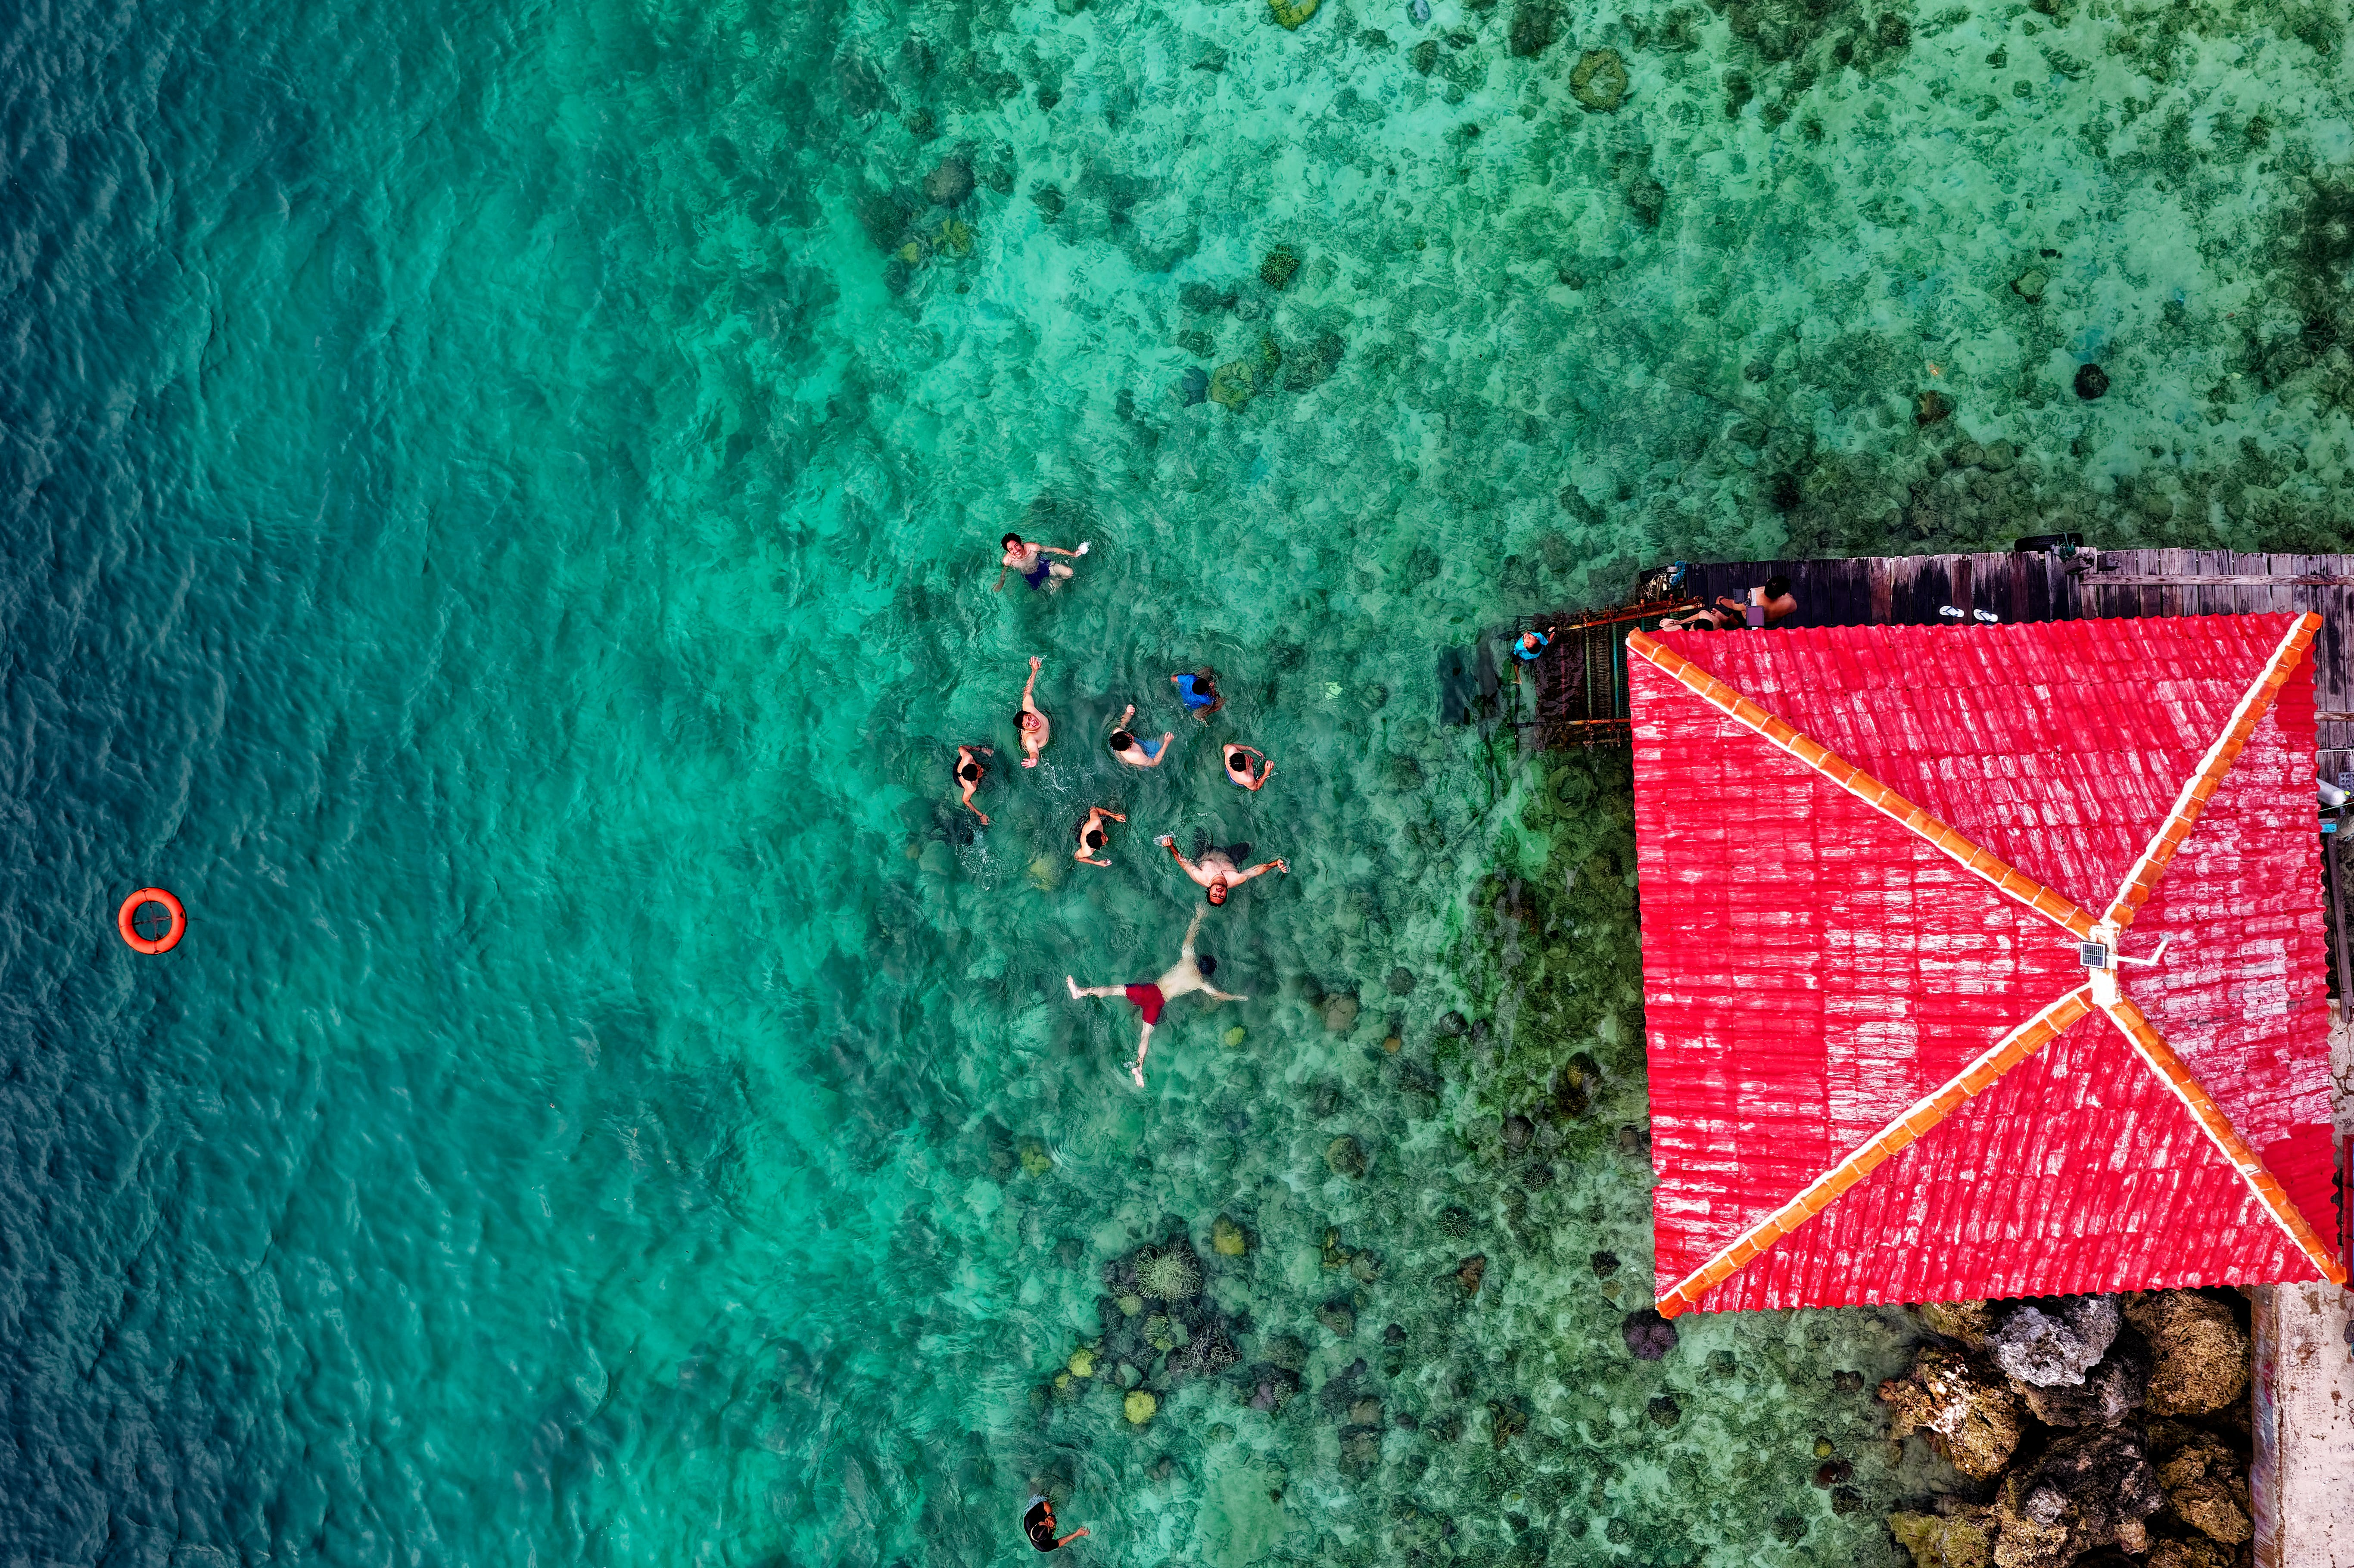 Aerial Photo of People on Body of Water